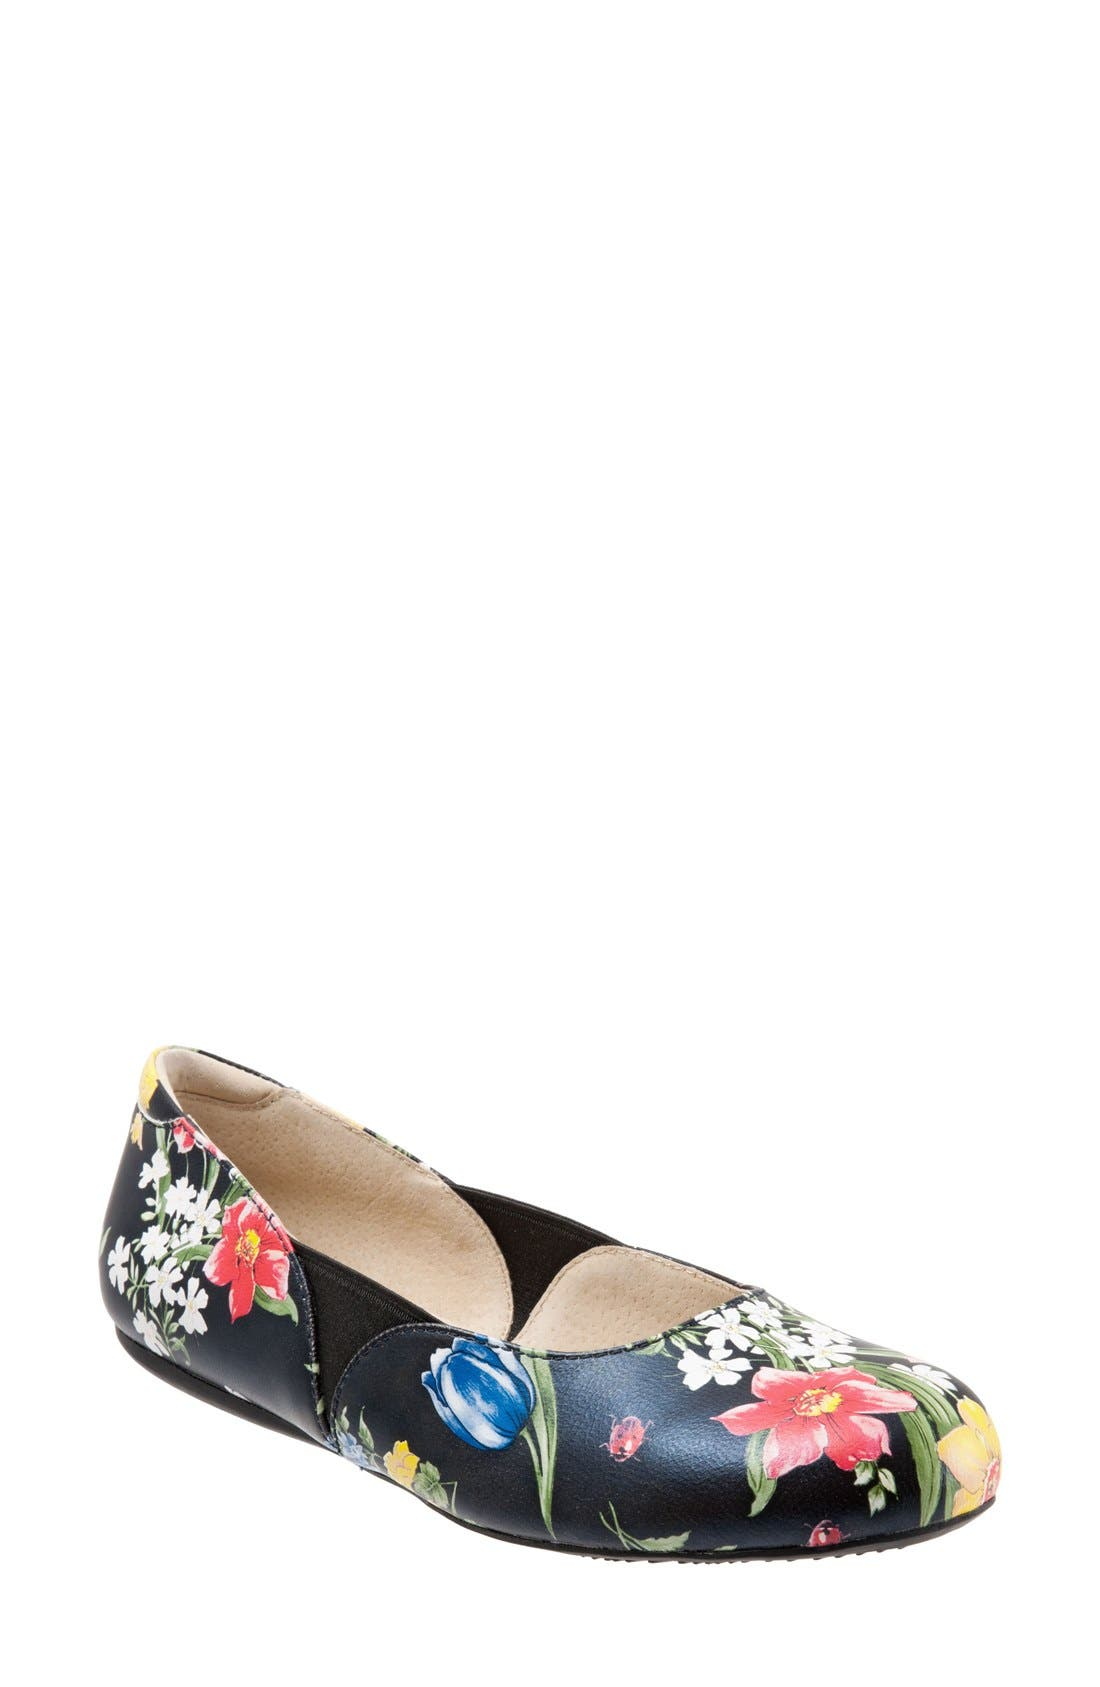 'Norwich' Flat,                             Main thumbnail 1, color,                             Midnight Floral Leather